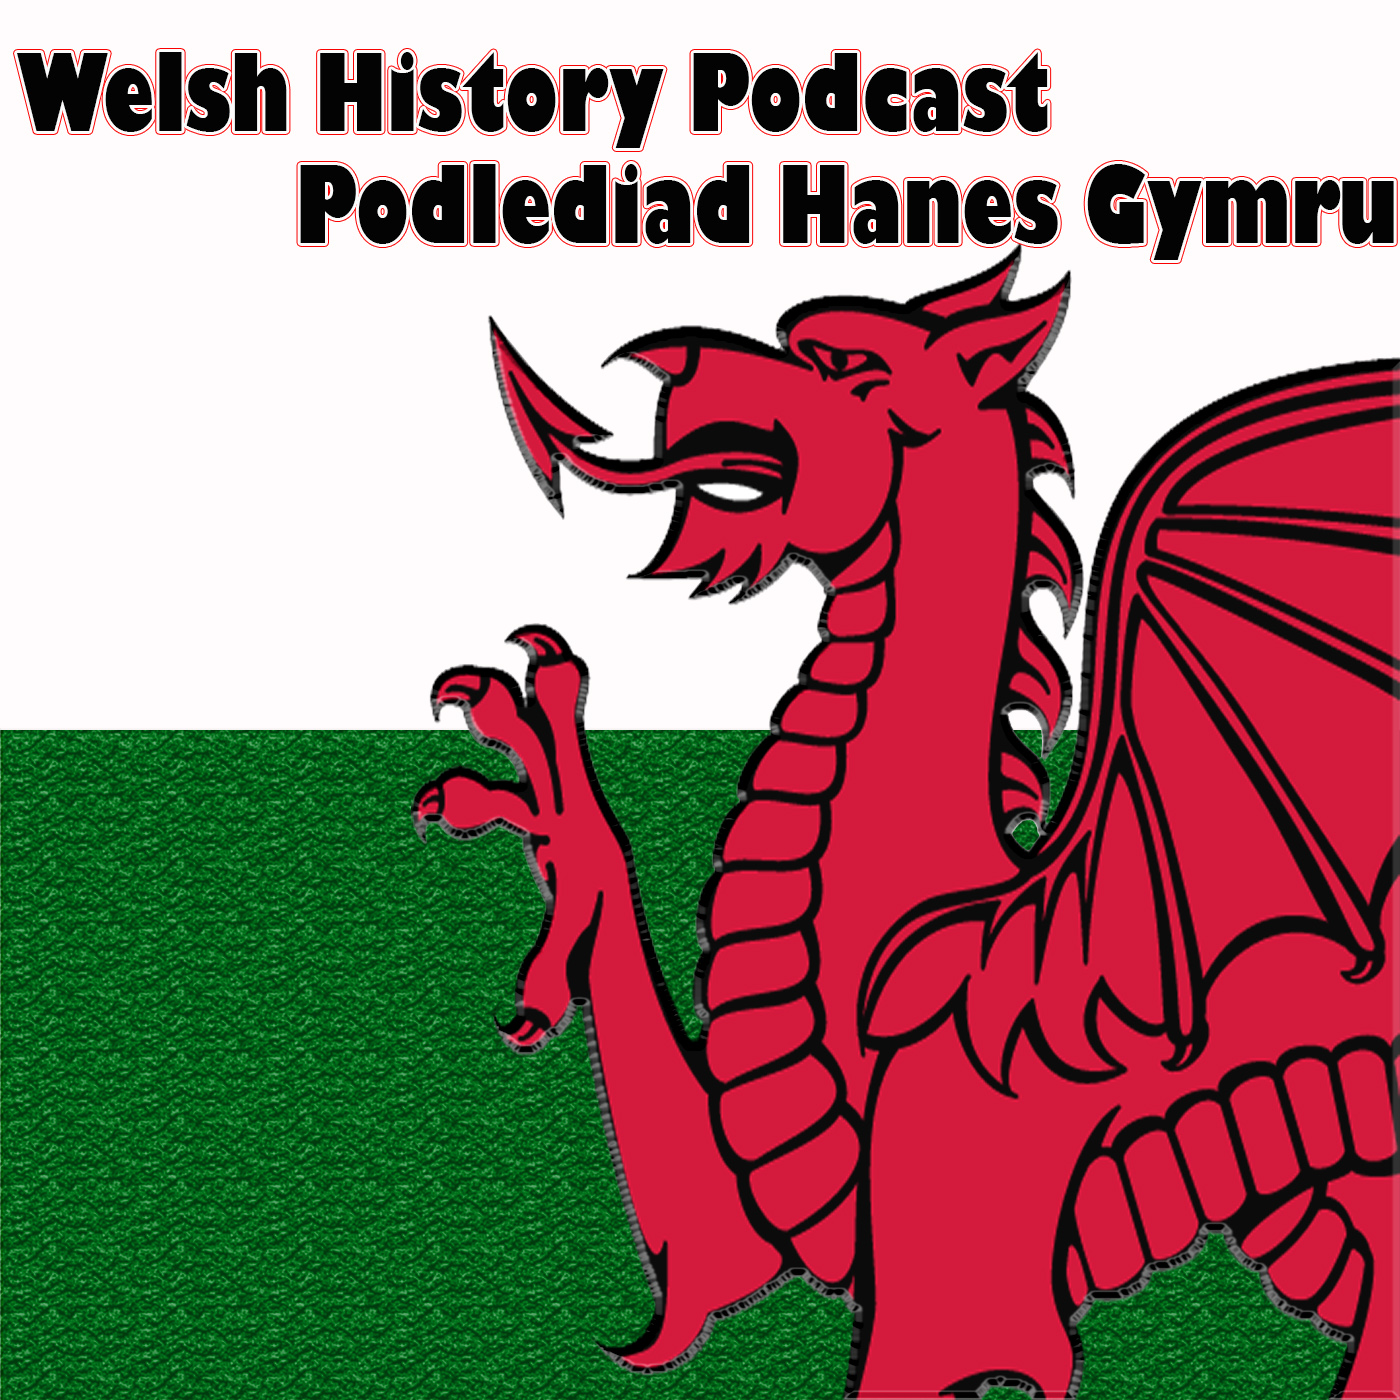 Welsh History Podcast Episode 78: Life of Gruffudd ap Cynan Part 3